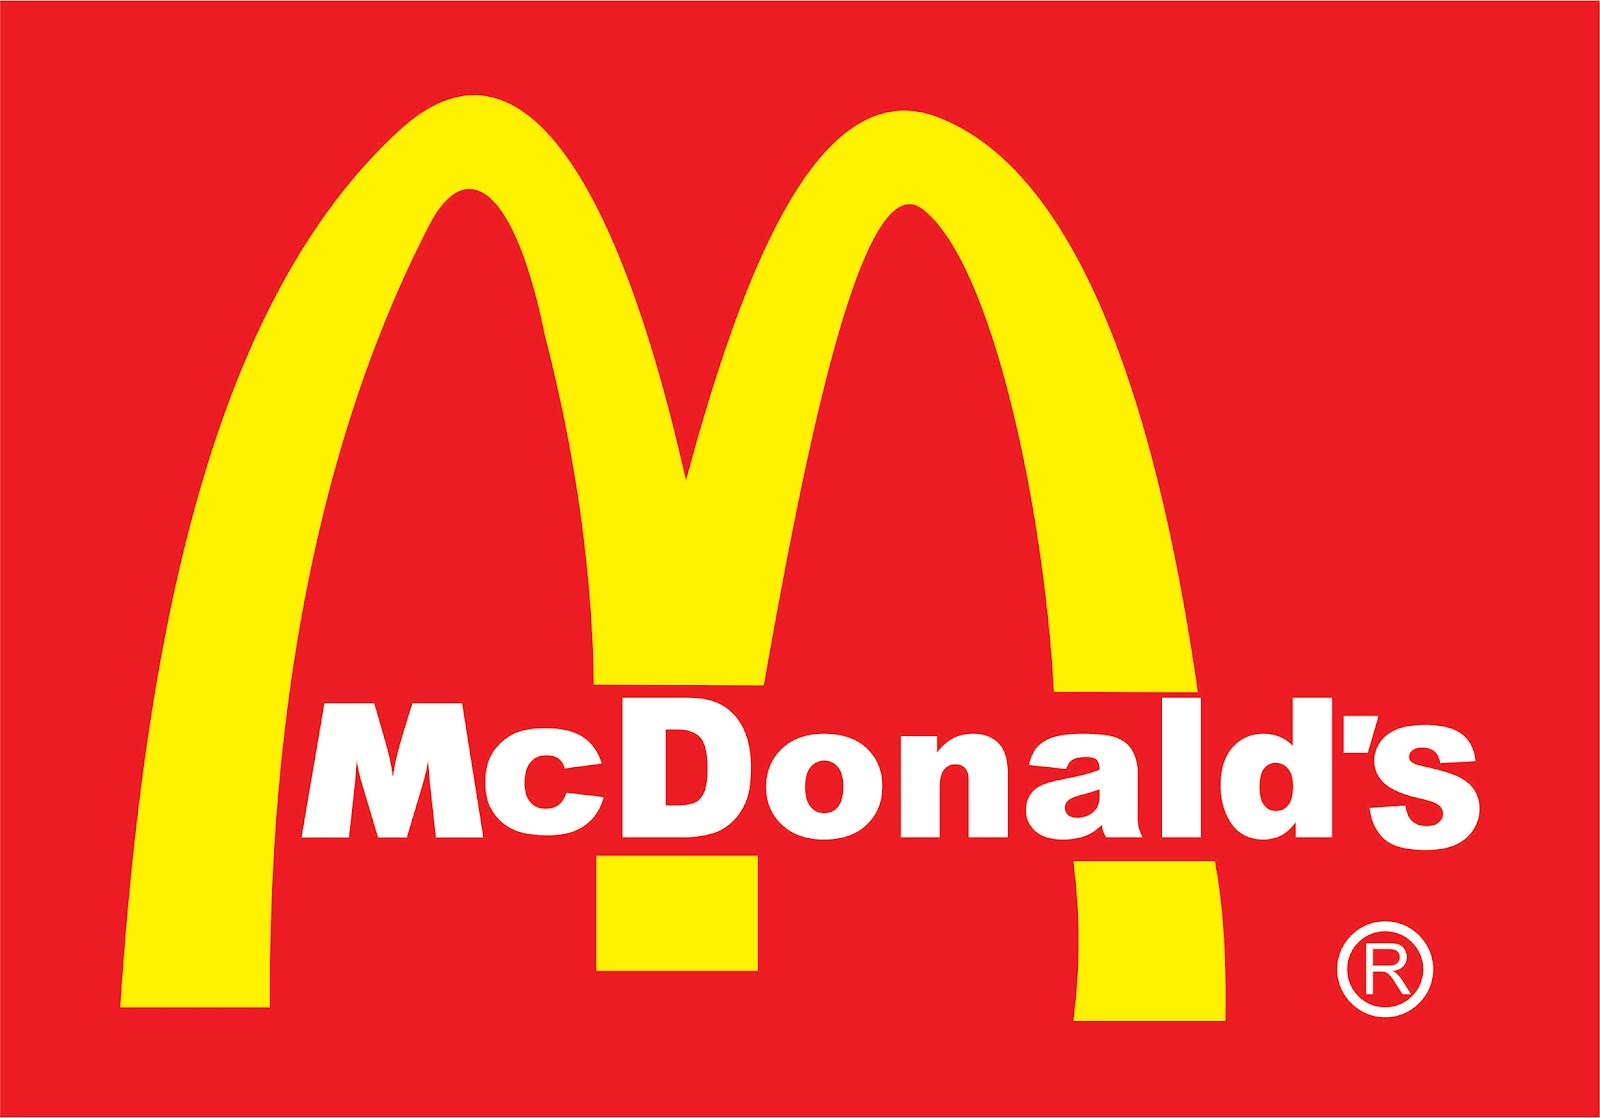 Macdonalds Logo Wallpaper